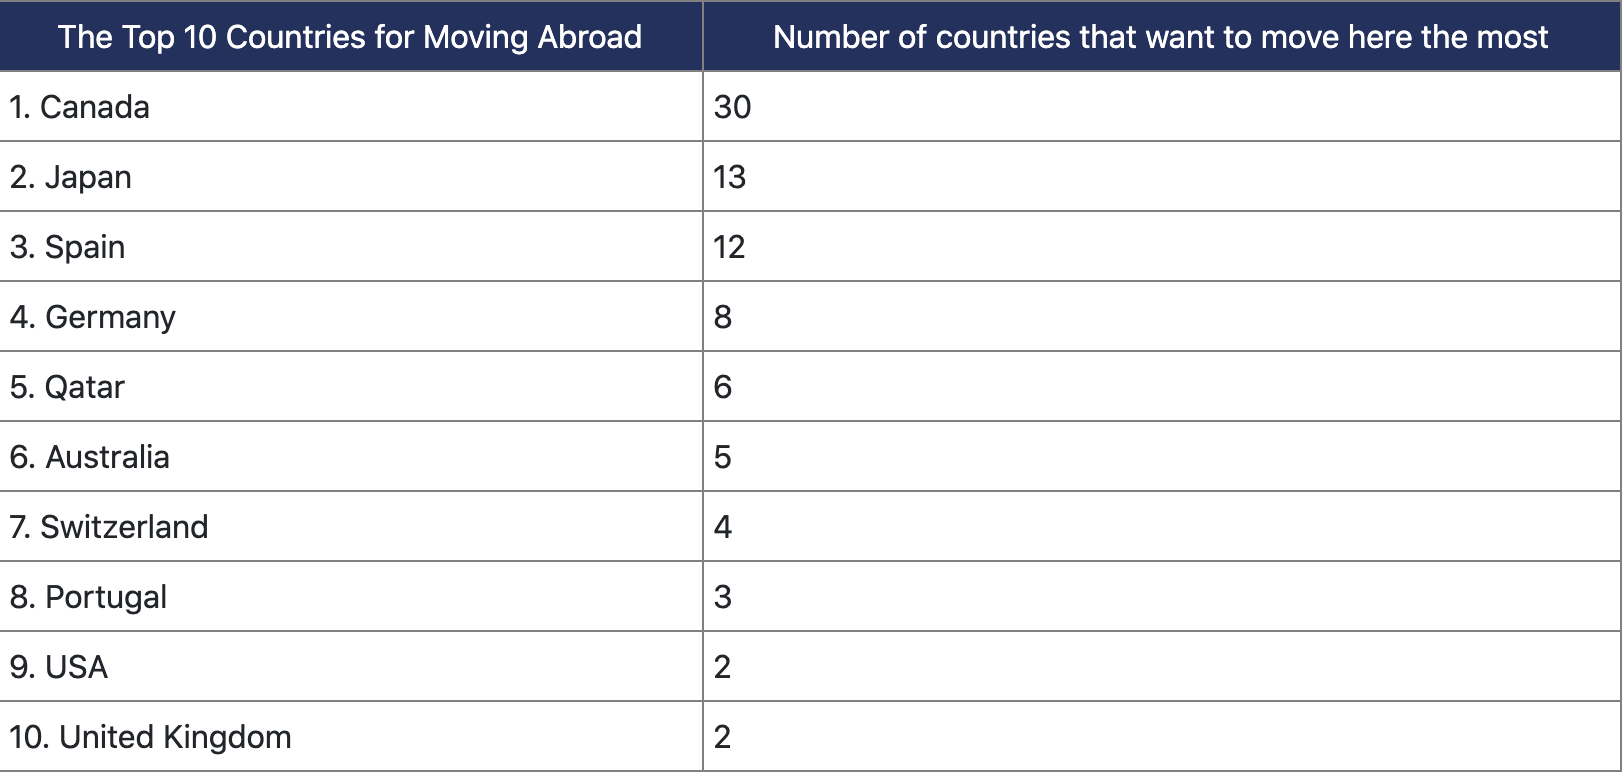 Canada ranks top country for people wanting to move abroad